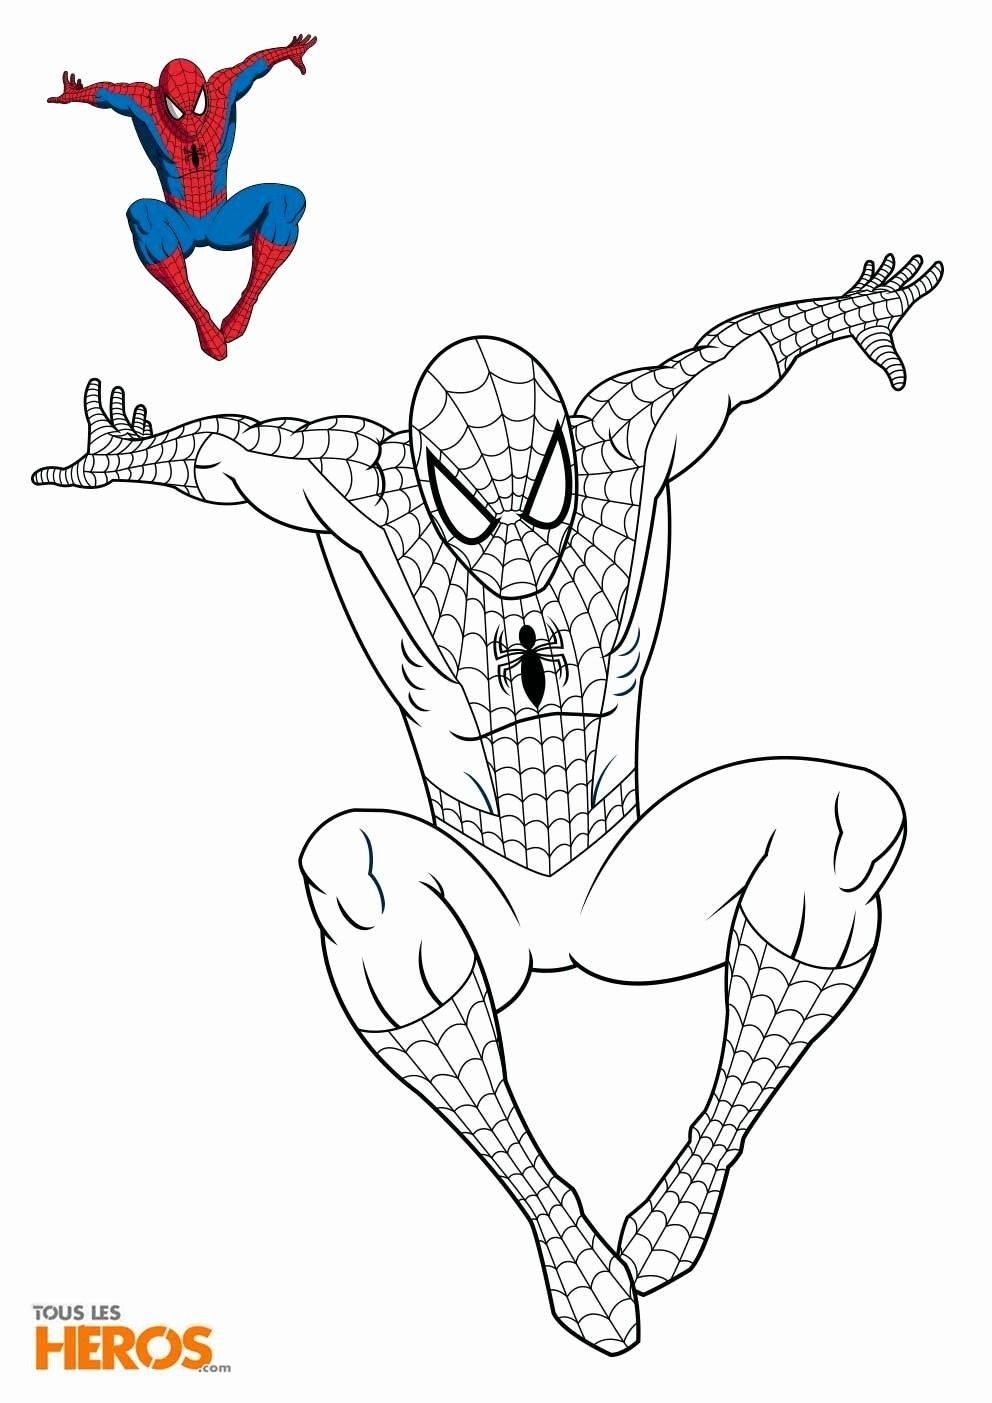 10 Spiderman Coloring Avengers Coloring Pages Superhero Coloring Pages Avengers Coloring